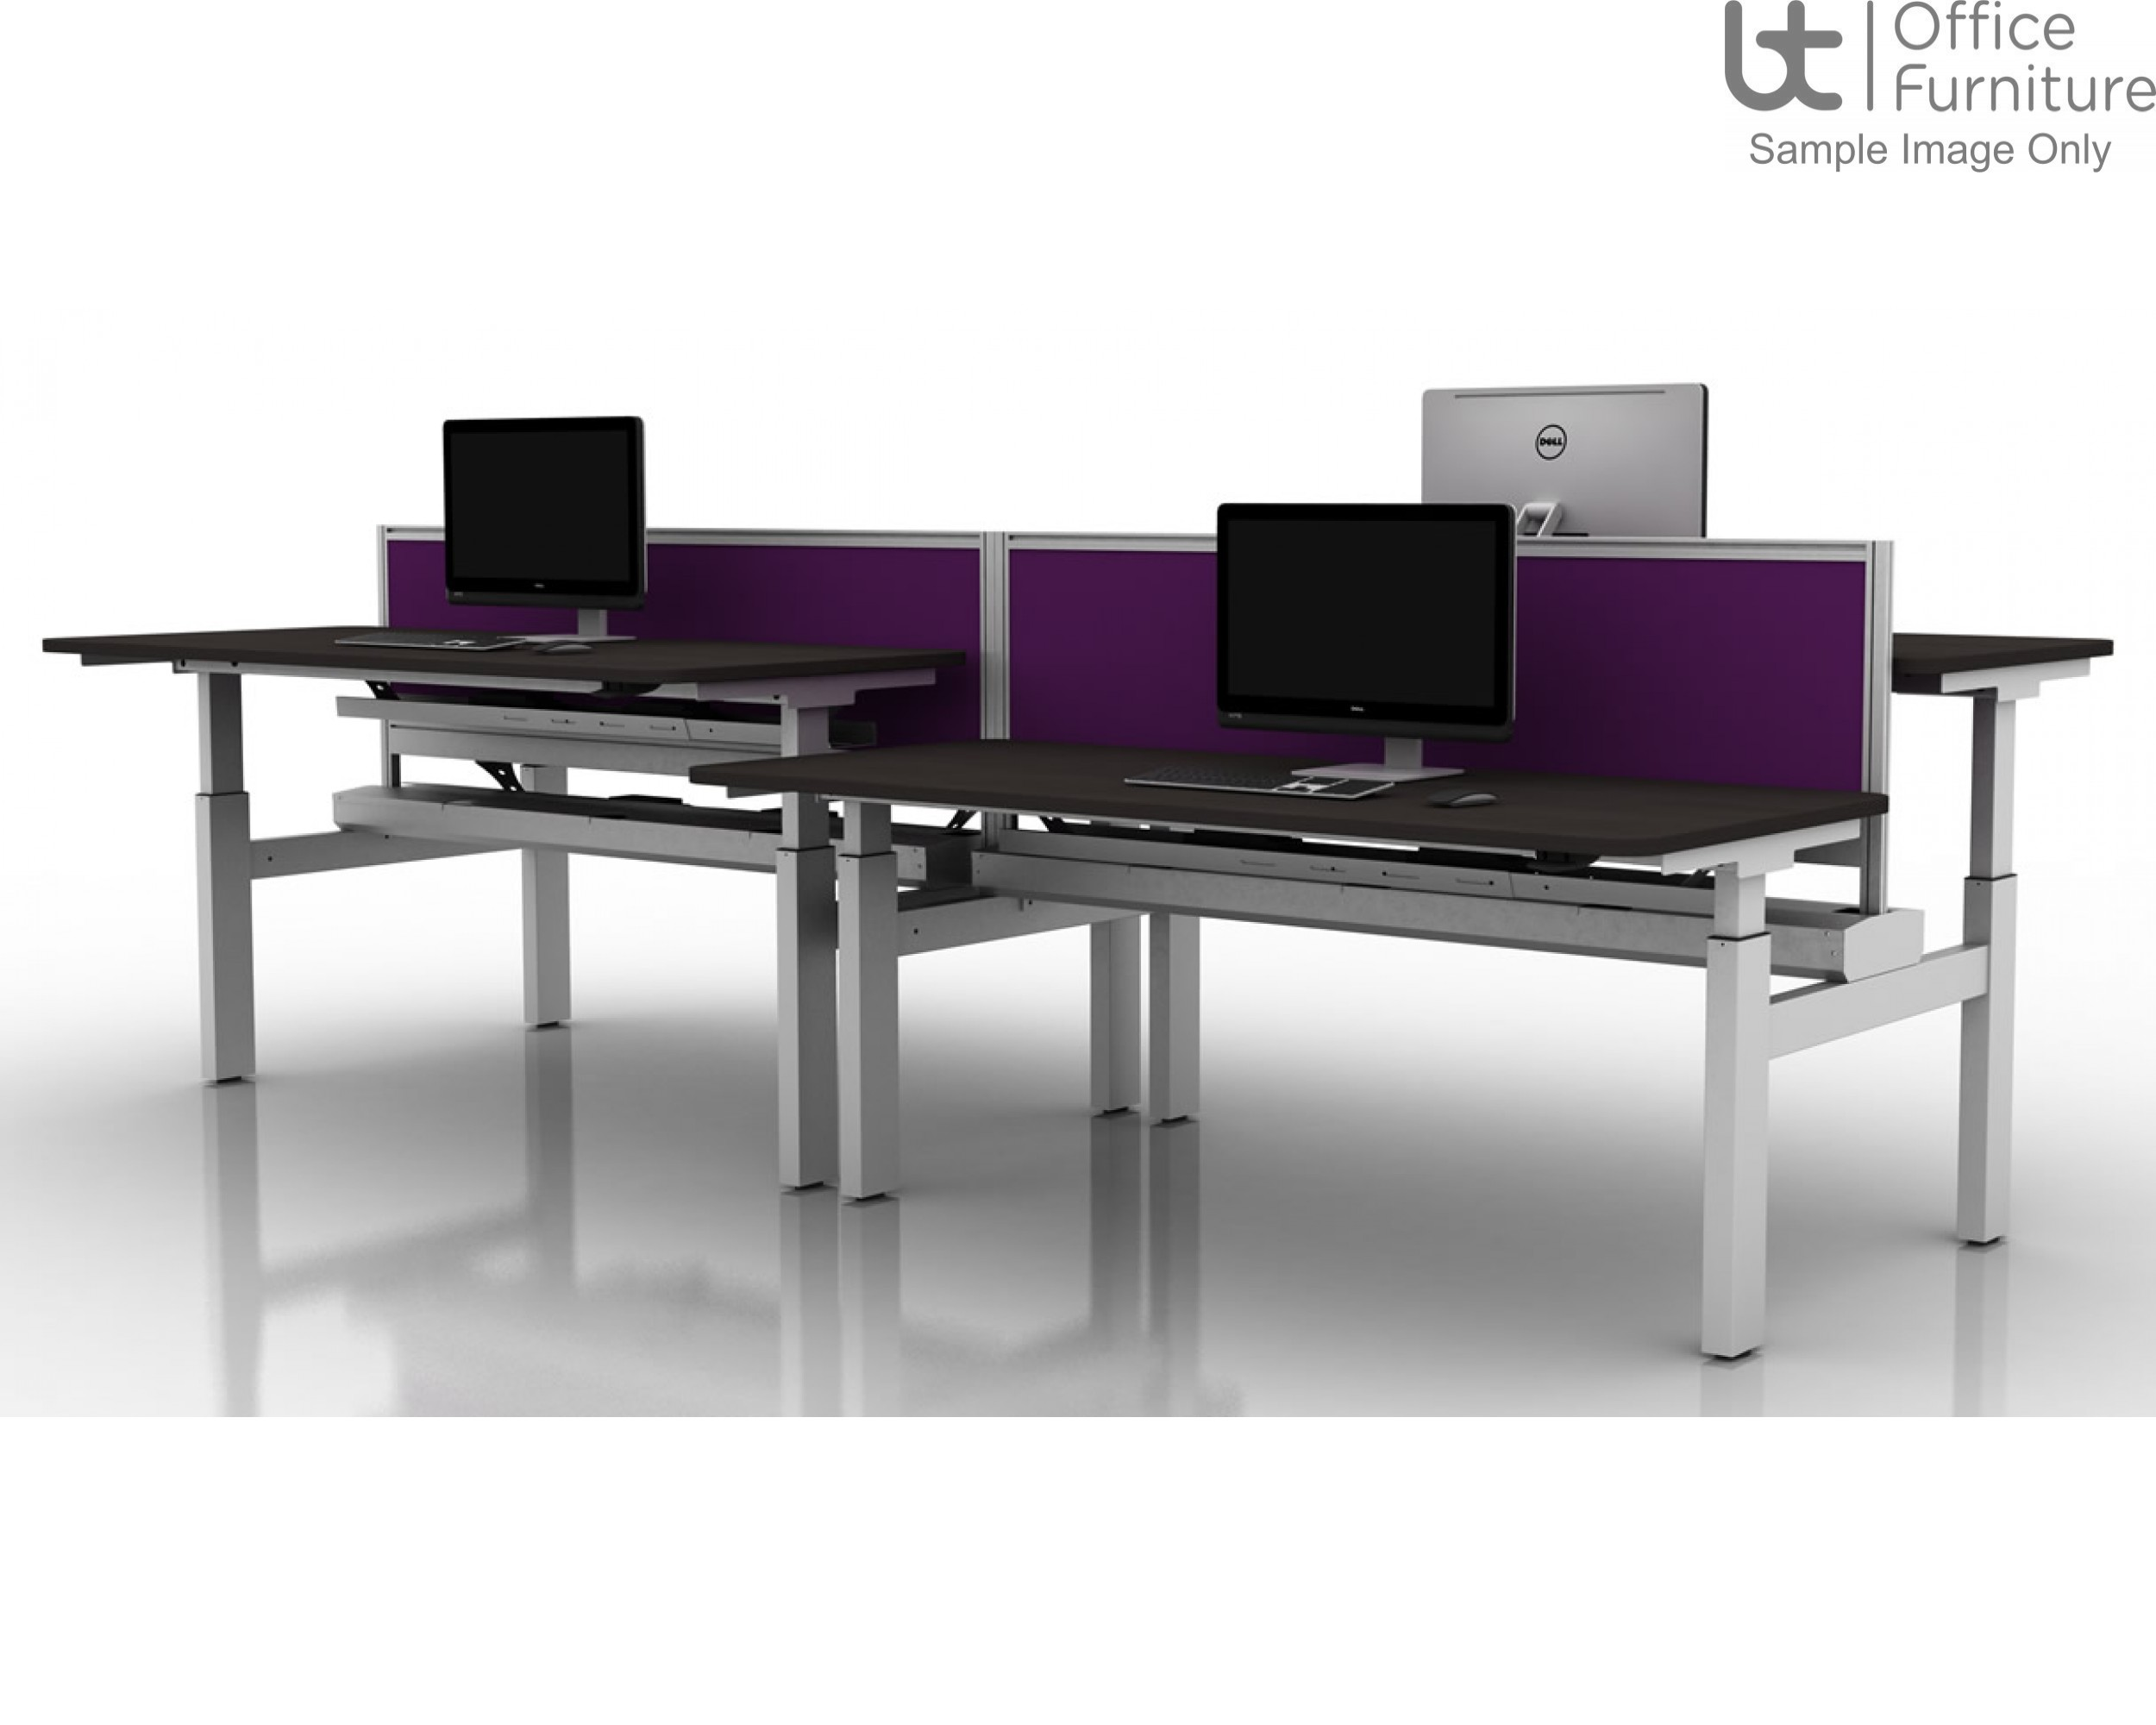 Move! Set and Forget Rectangular Height Adjustable Back To Back Sit-Stand Desk